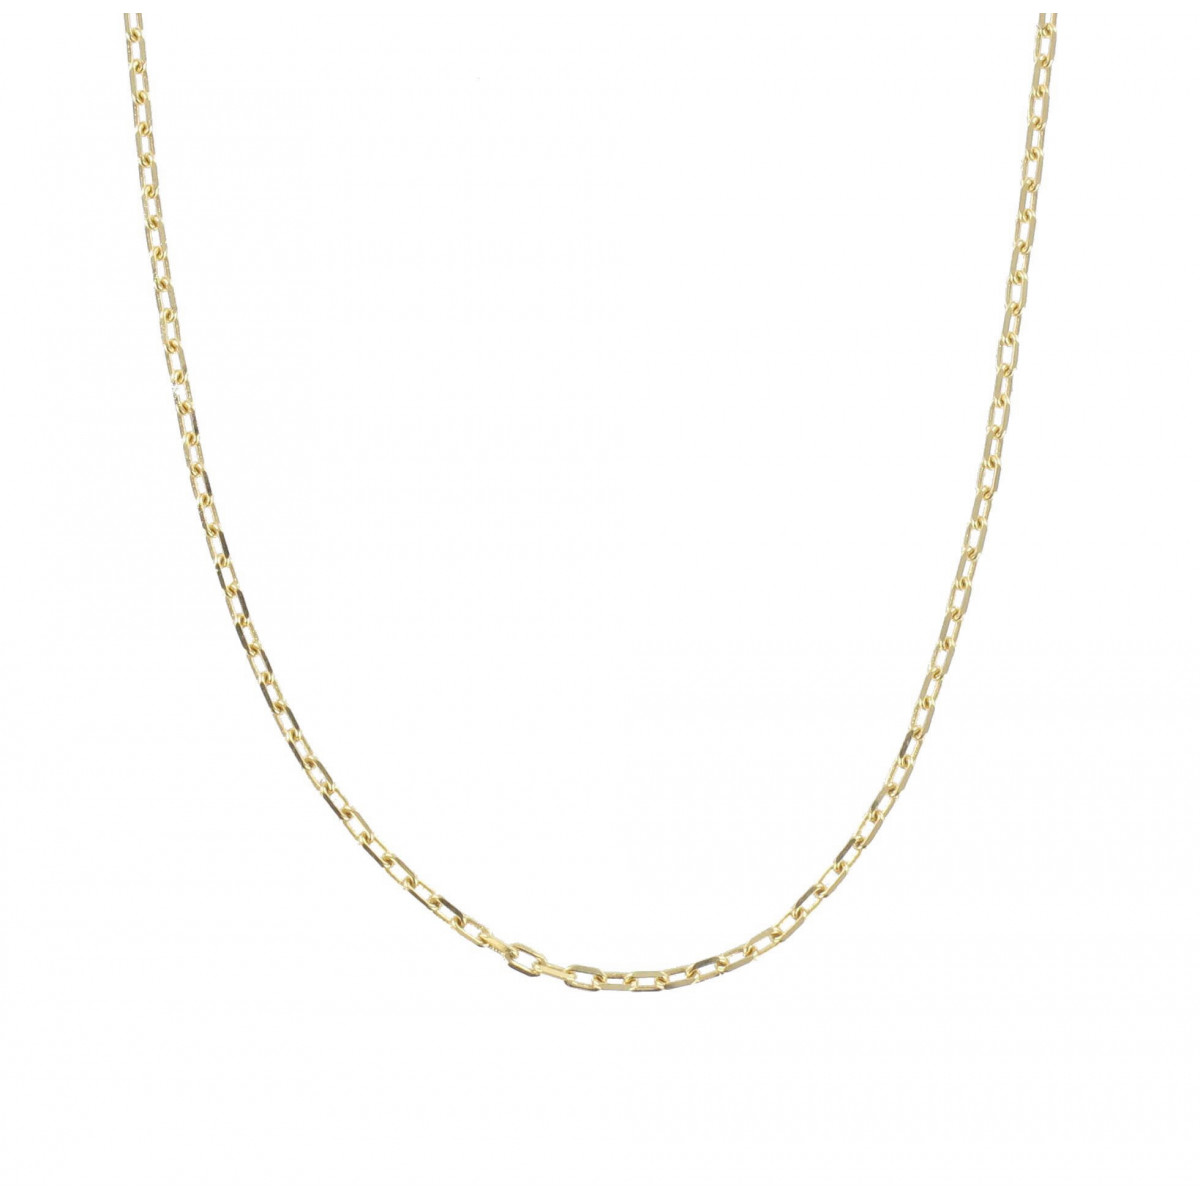 GOLD 40 CENTIMETERS CHAIN